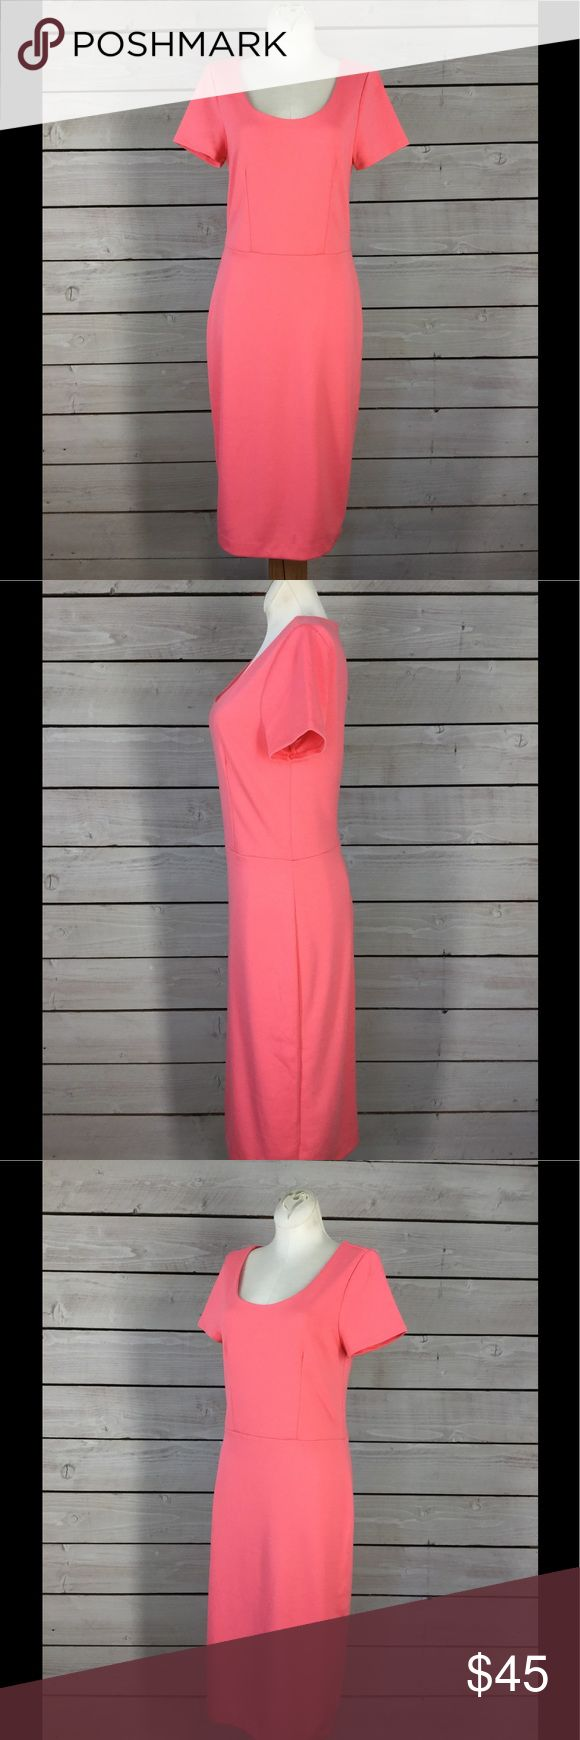 NWT The Limited Pink Dress Great for the office or weekend getaway! NEVER WORN!! In excellent new condition. Body is 77% polyester 20% rayon 3% spandex. Lining is 100% polyester.   Measurements are taken lying flat. Bust: 15.5 Length: 42 Waist: 14   Please inquire for more information on where the exact measurement was taken prior to purchase. Available for questions and concerns. Thank you for your interest, for more great finds please view my other listings! The Limited Dresses